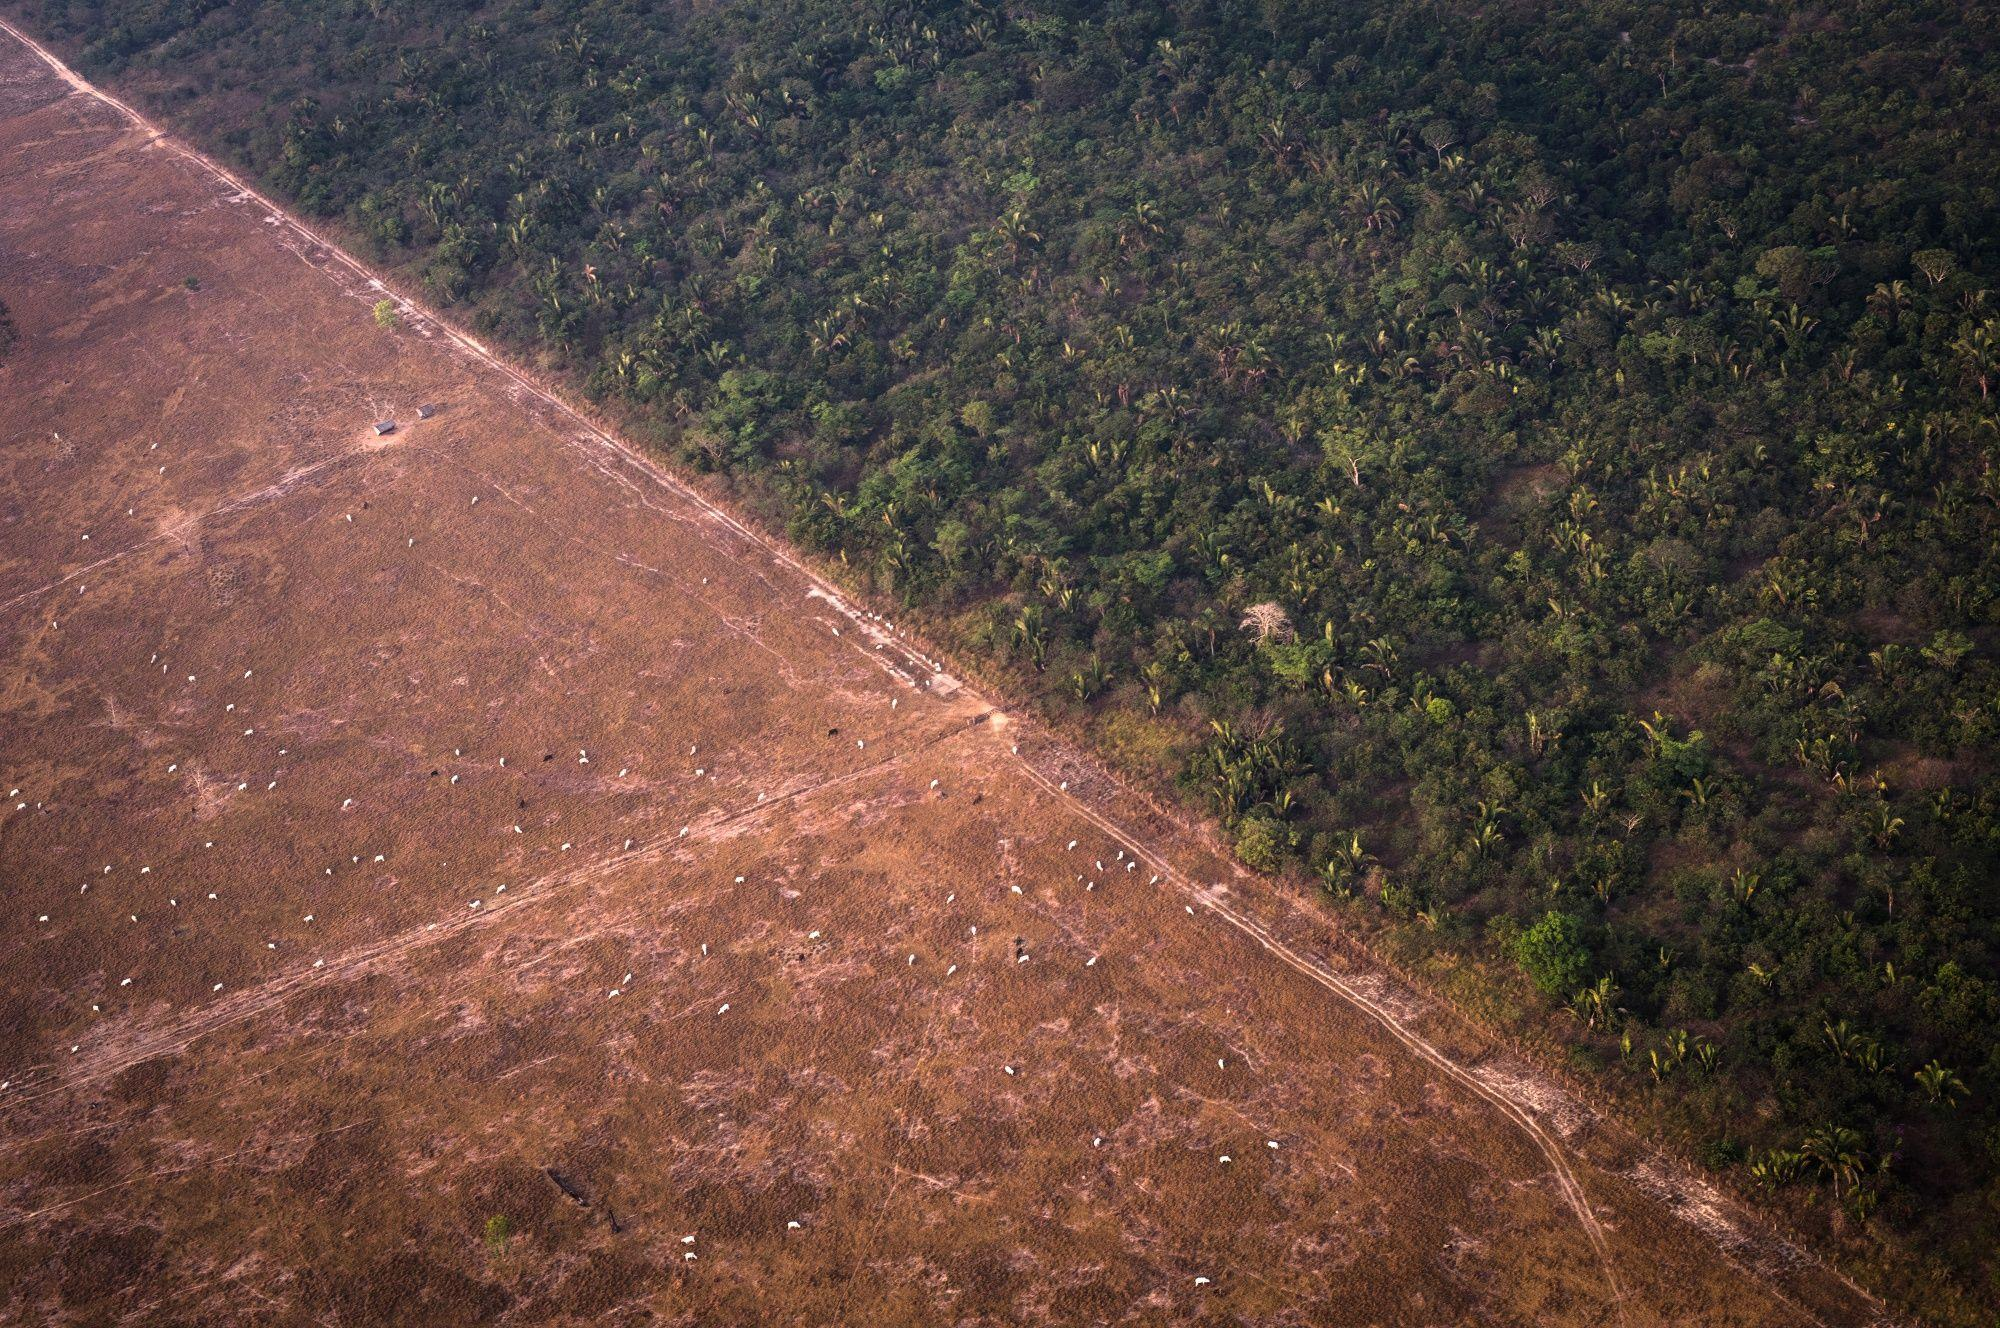 Record deforestation in the Amazon rainforest confirms official Brazilian data